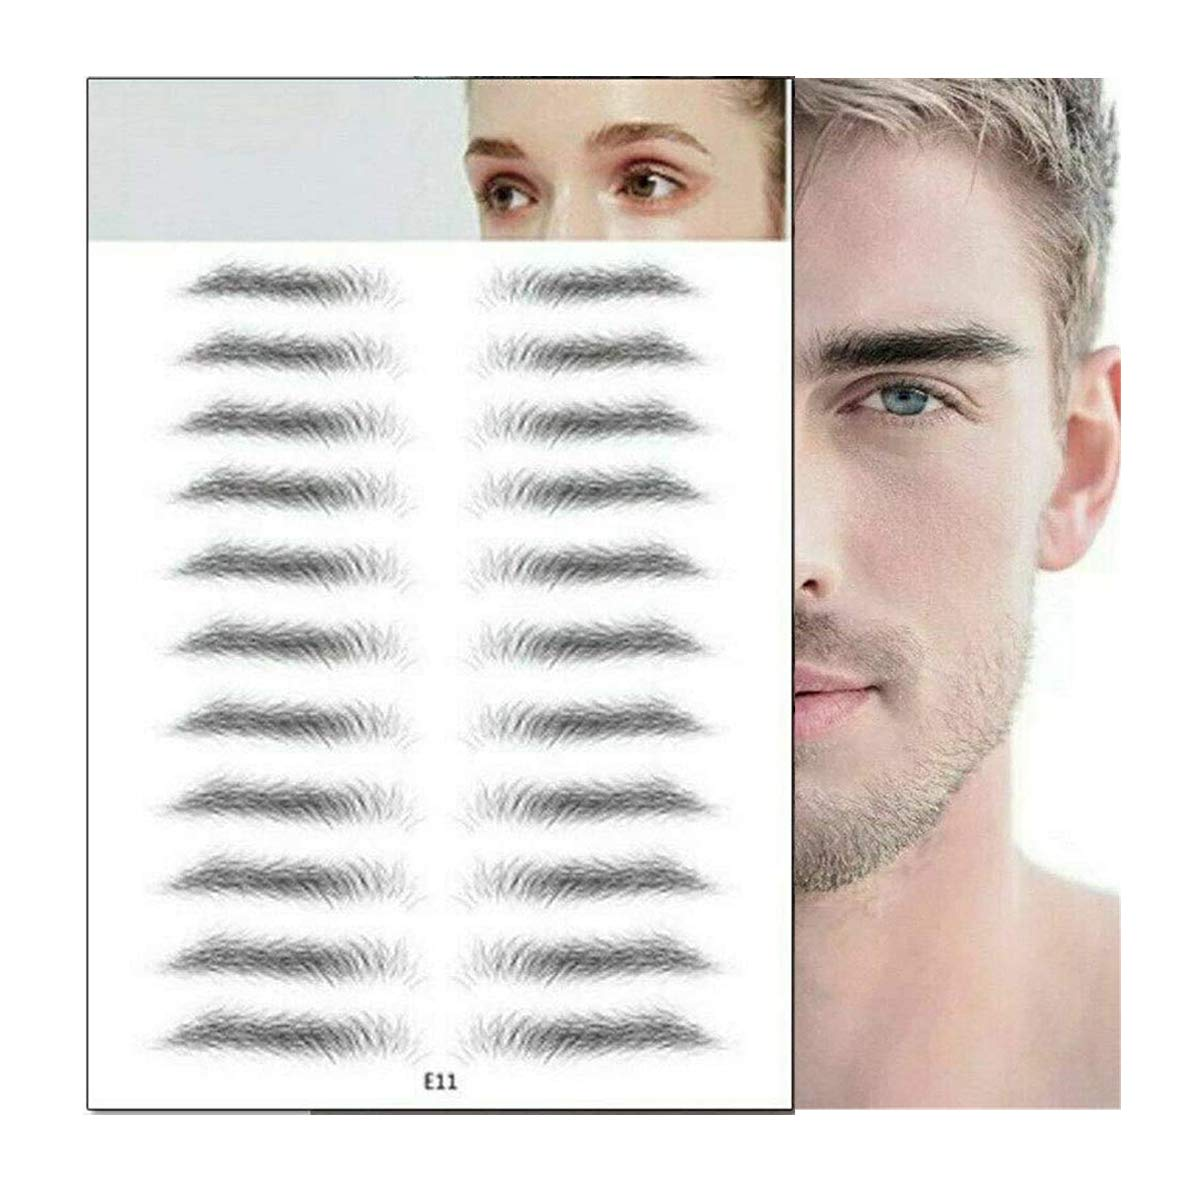 Aaiffey Hair-like Authentic Eyebrows 4D Instant Eyebrow Stickers Imitation Eyebrow Tattoo Waterproof Long Lasting Natural Eyebrow Makeup Tool 11 Pcs